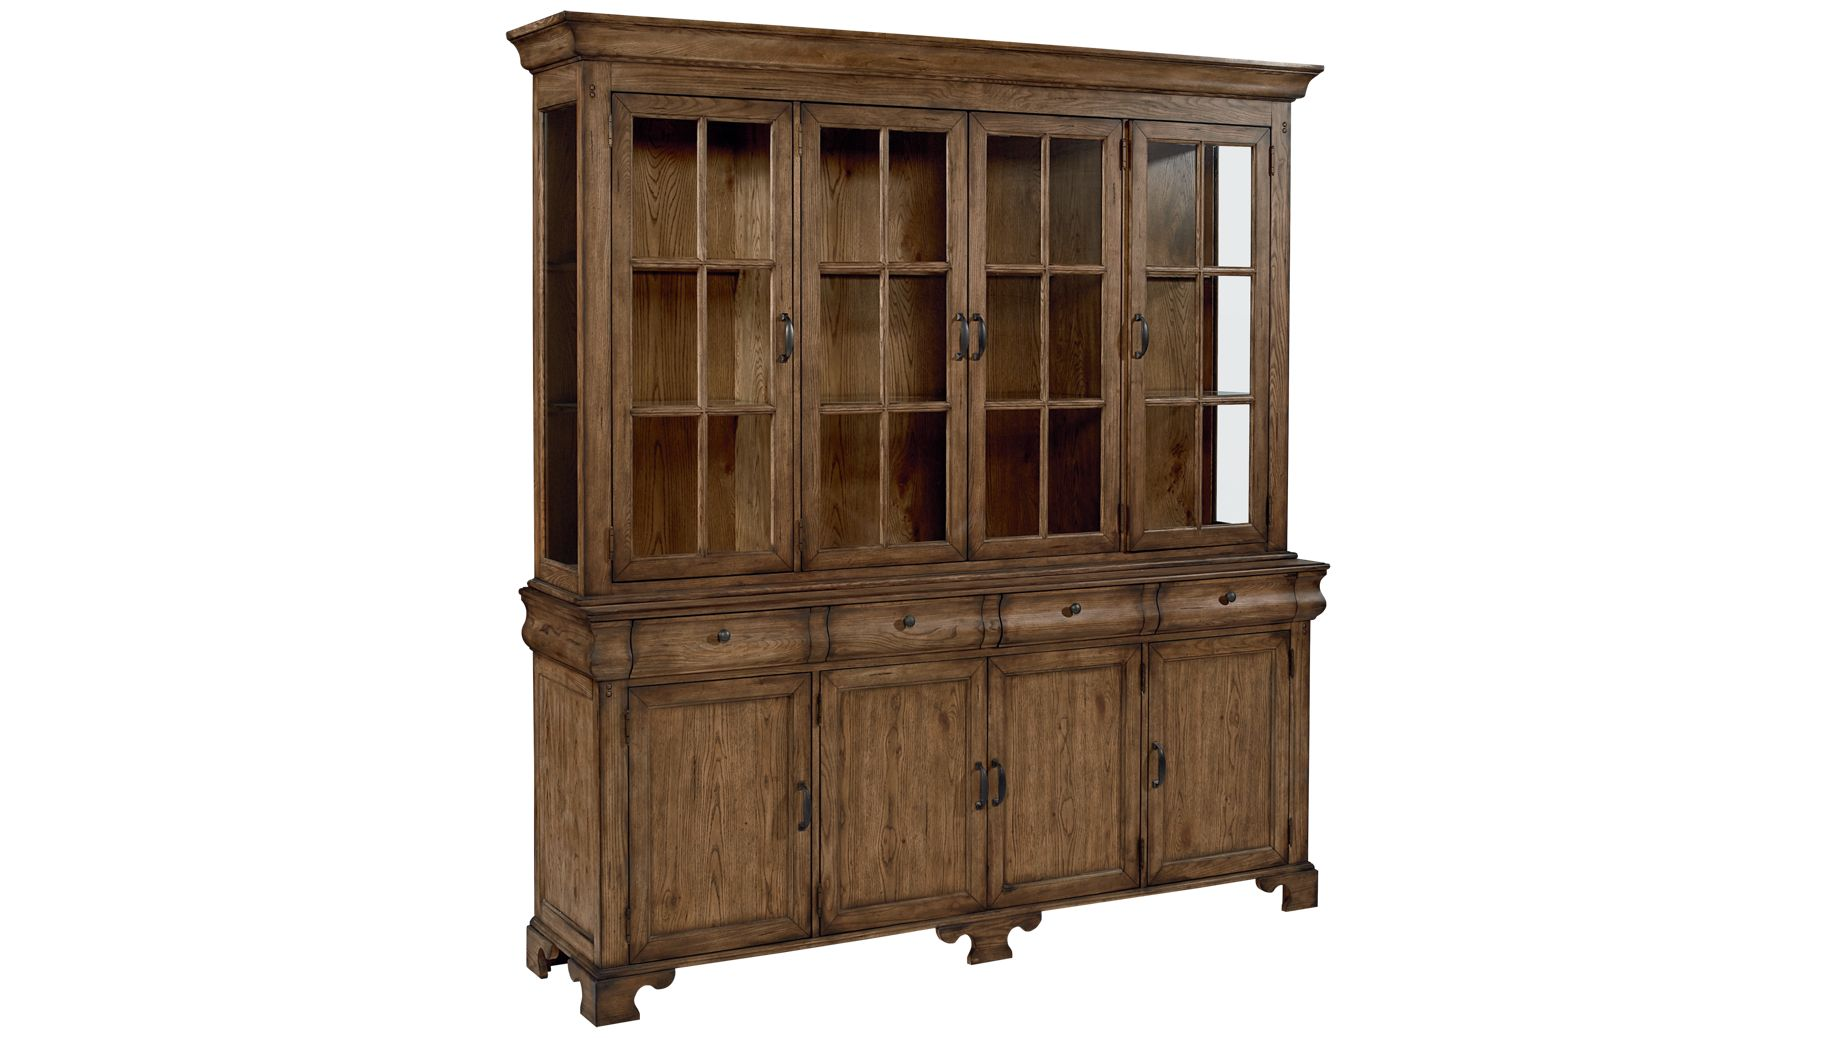 Magnolia Home Showcase Buffet and Hutch. Magnolia Home Magnolia Home Magnolia Home Showcase Buffet and